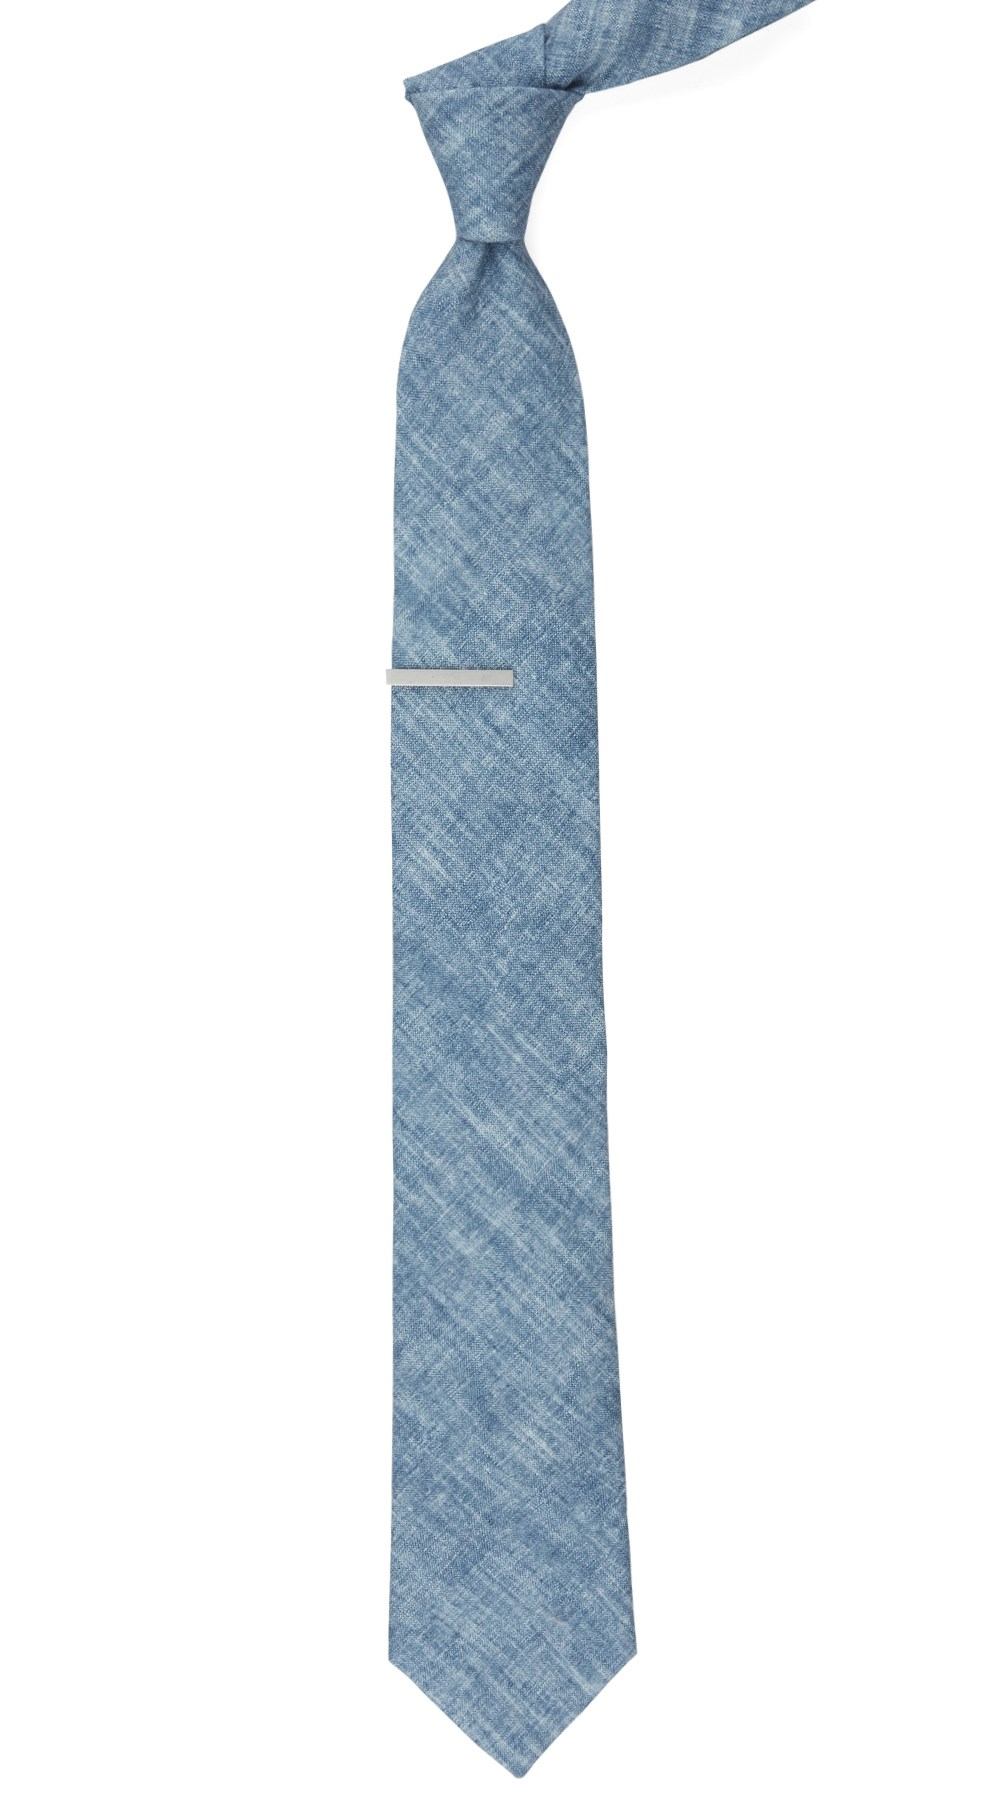 Classic blue freehand solid tie ties bow ties and pocket squares classic blue freehand solid tie classic blue freehand solid tie ccuart Image collections